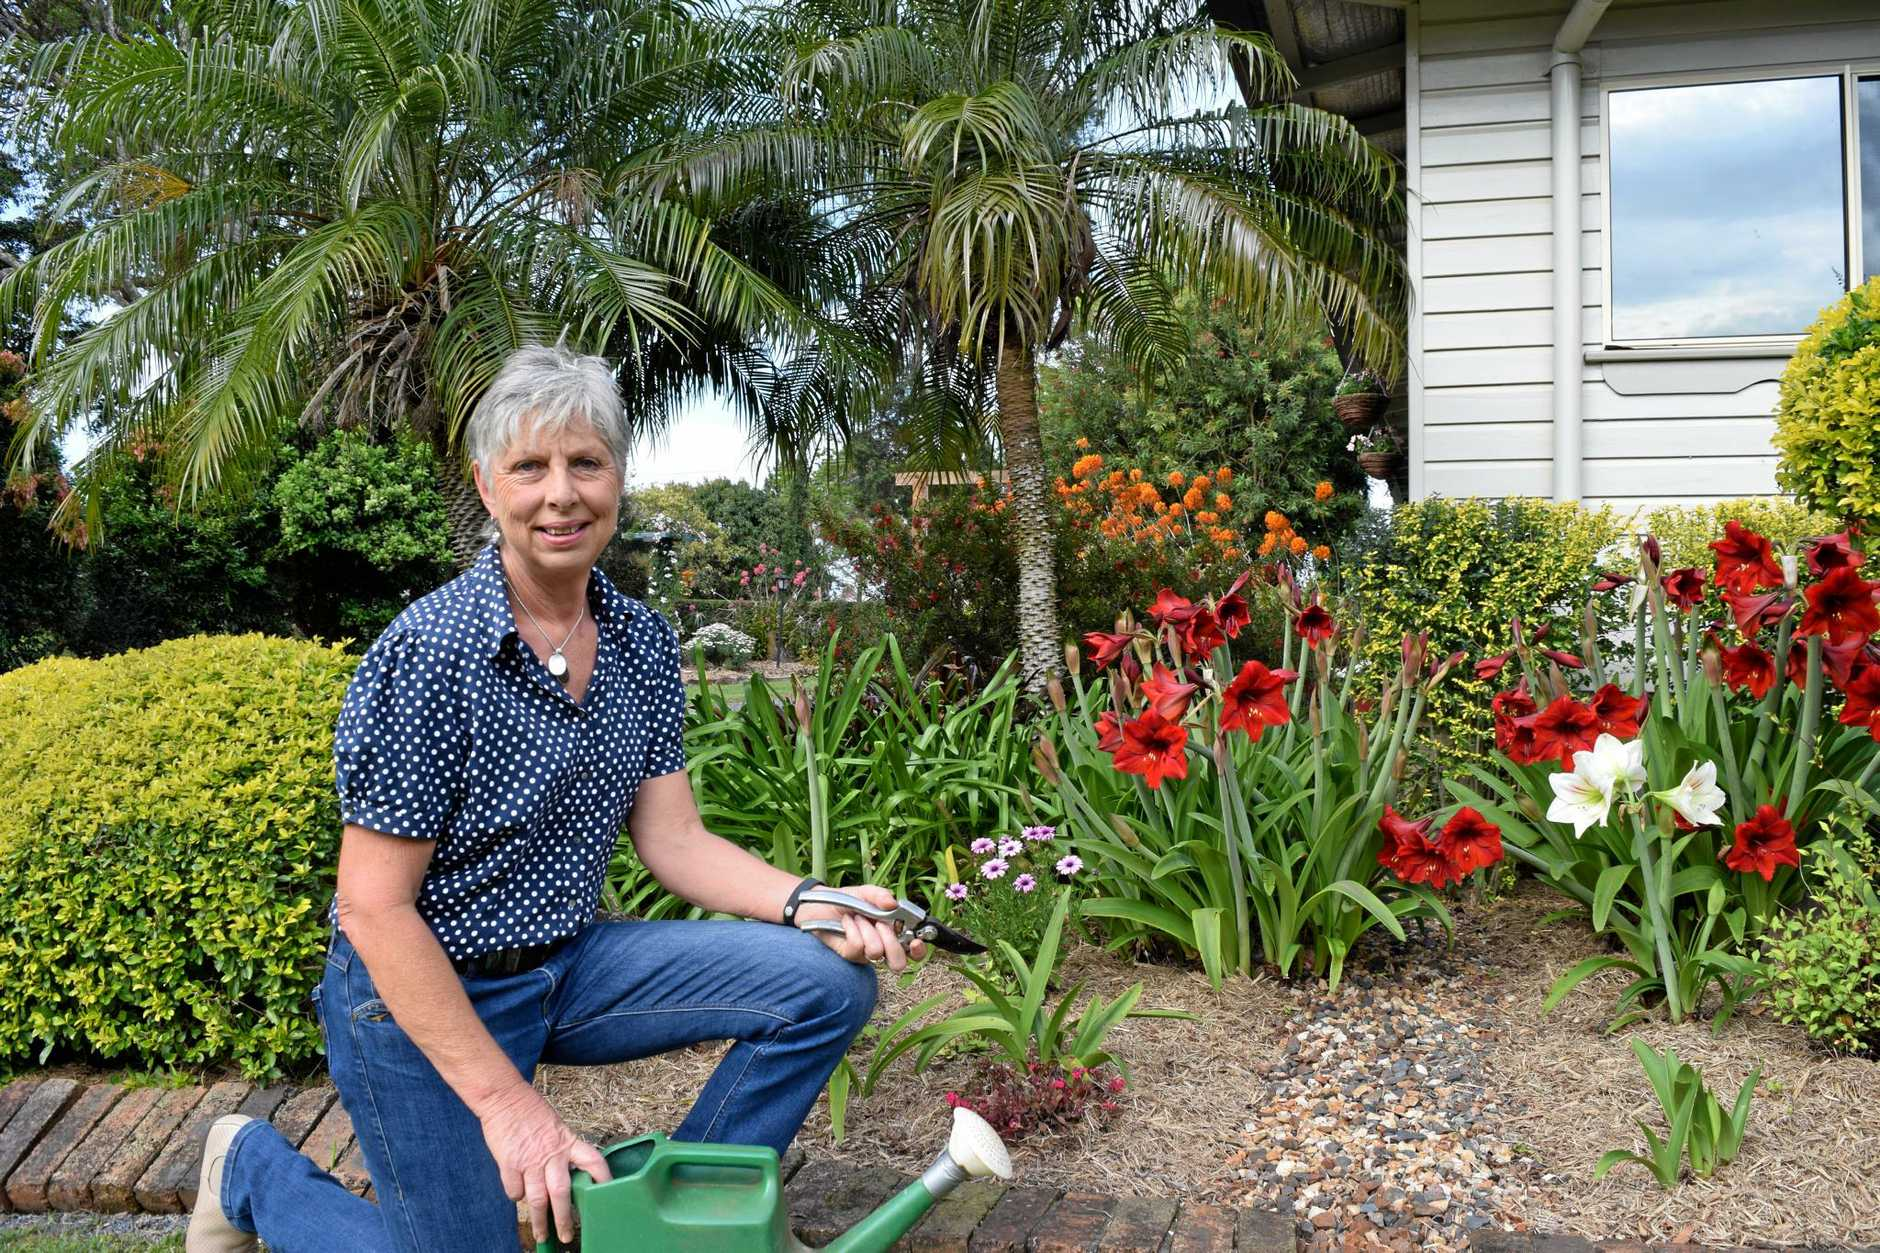 LABOUR OF LOVE: Joy Collings in her Clunes garden, which has been awarded the Champion Garden in this year's Lismore Home Garden Club spring garden competition.